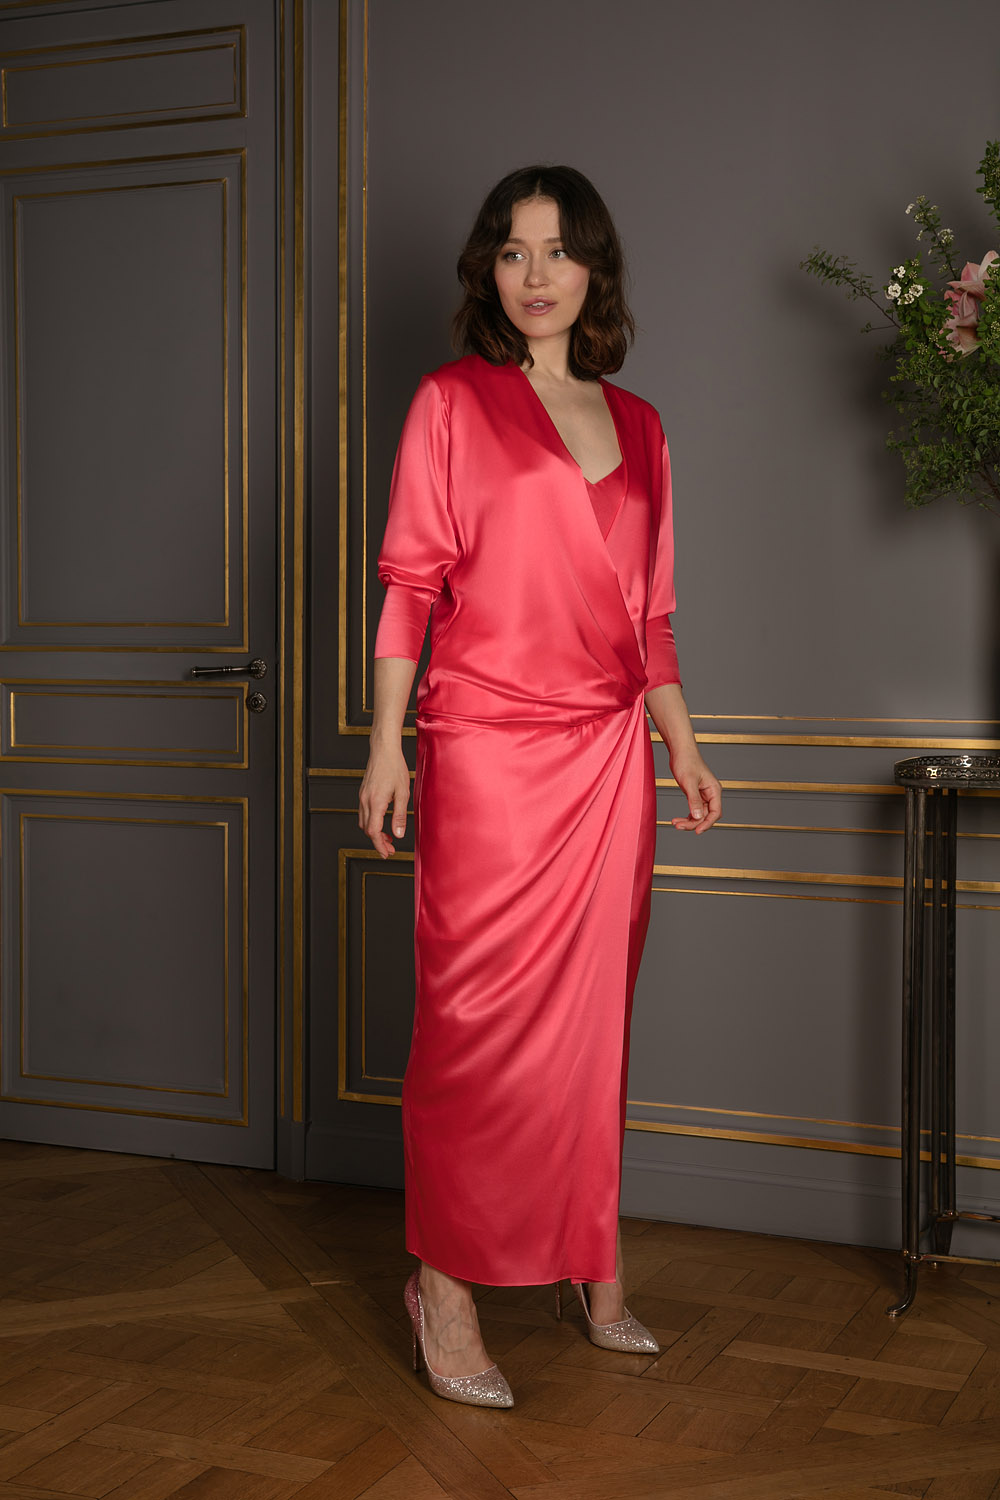 Ankle-length coral slip-on wrap dress with plunging cross over neckline